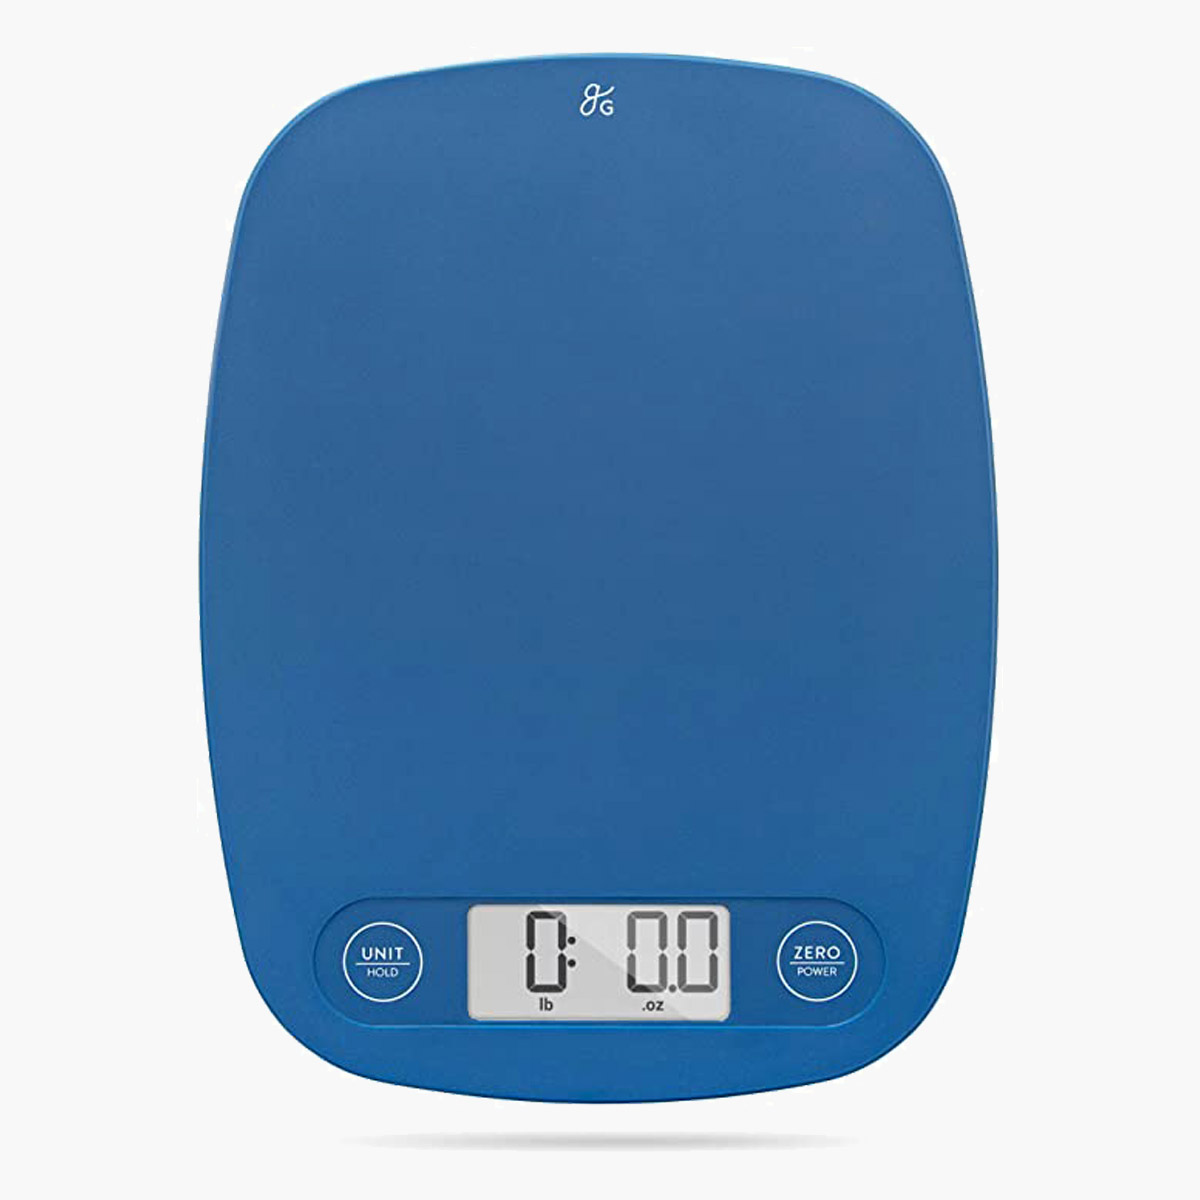 A blue Greater Good kitchen scale.